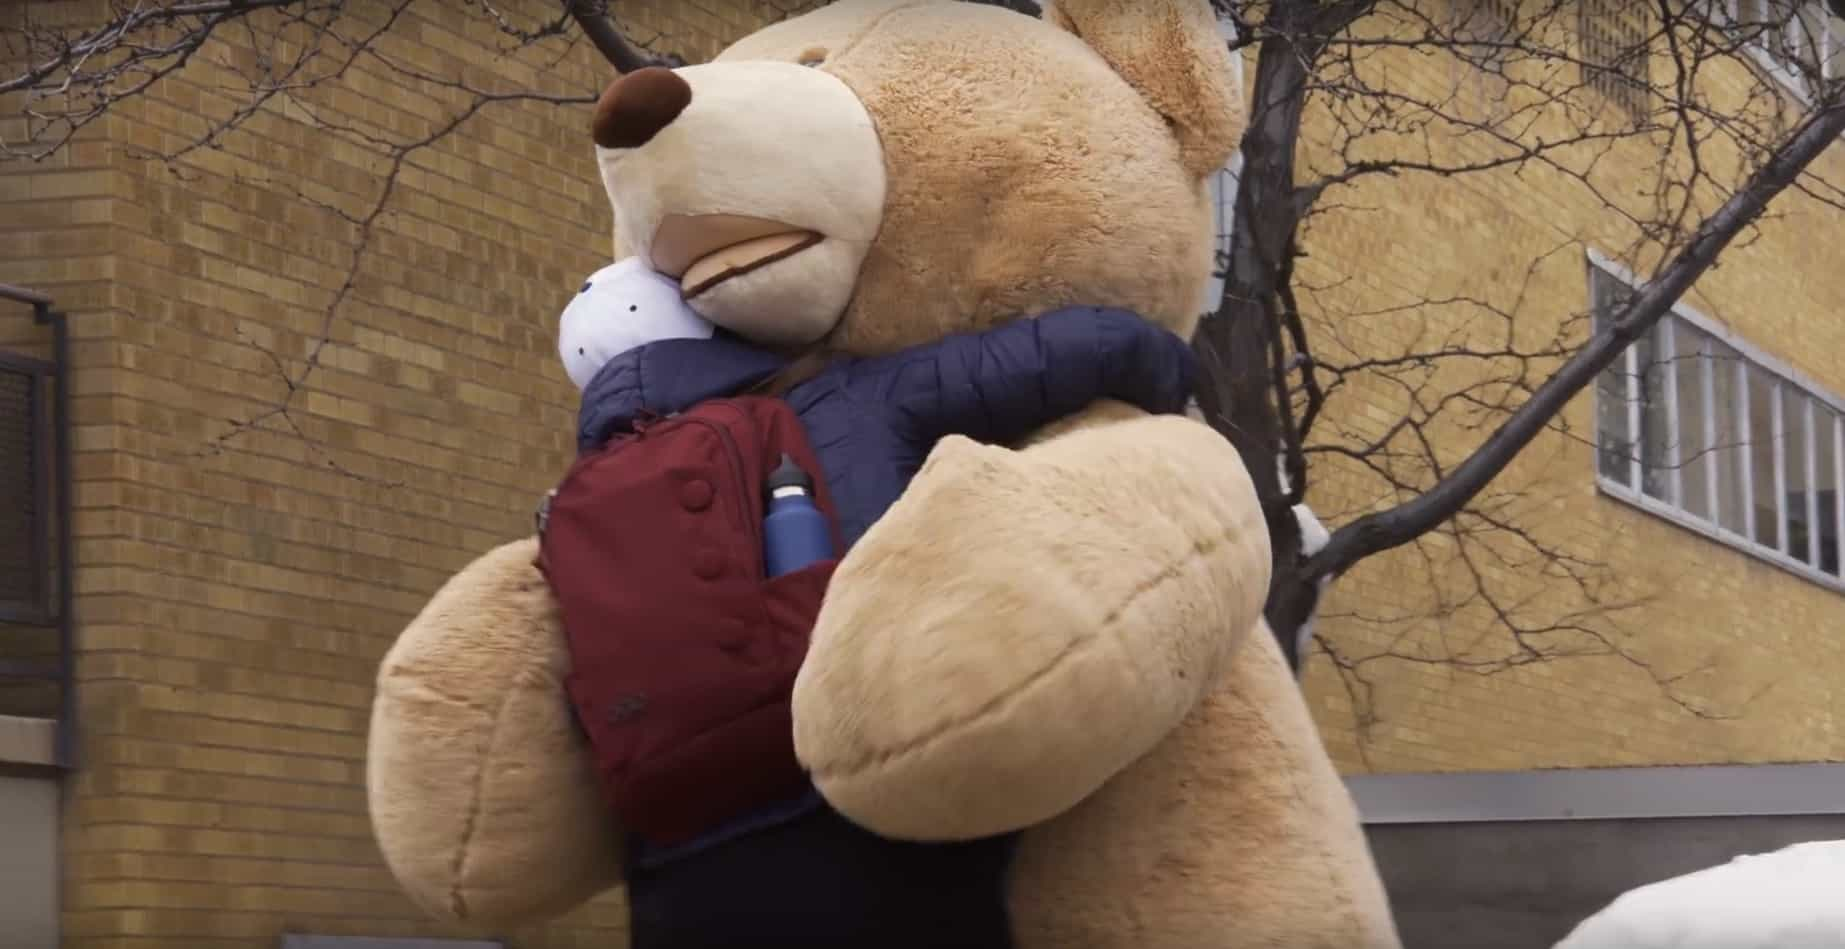 A Giant Teddy Bear Celebrates Valentines Day By Giving